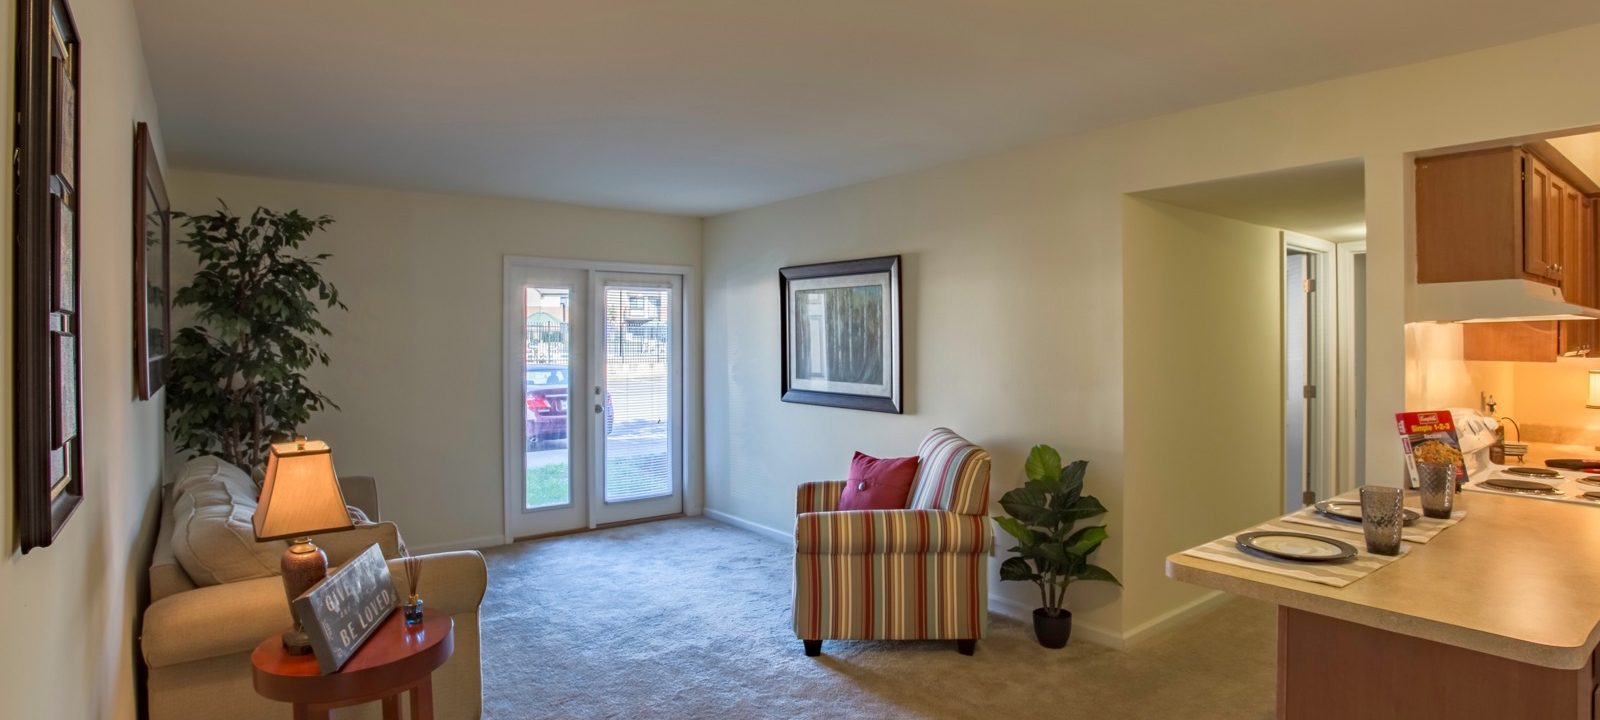 Forrest pines is spacious apartments for rent in newport - One bedroom apartments in newport news va ...